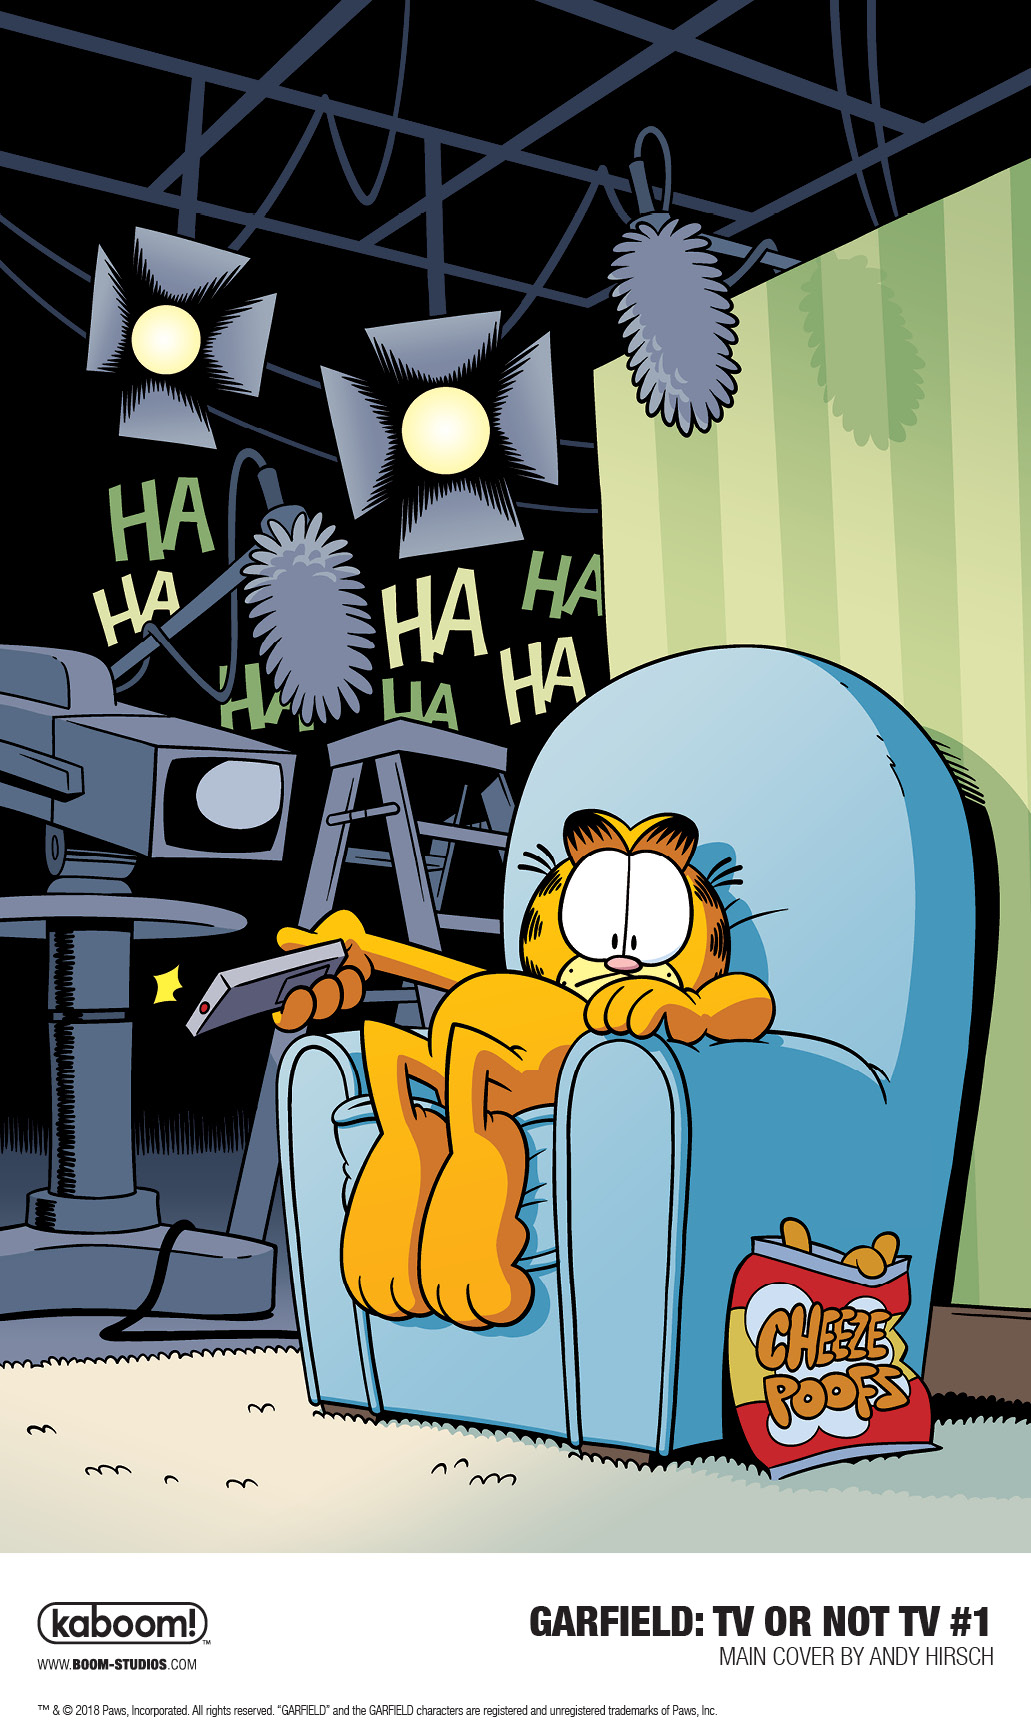 GARFIELD: TV OR NOT TV? #1 (2018)